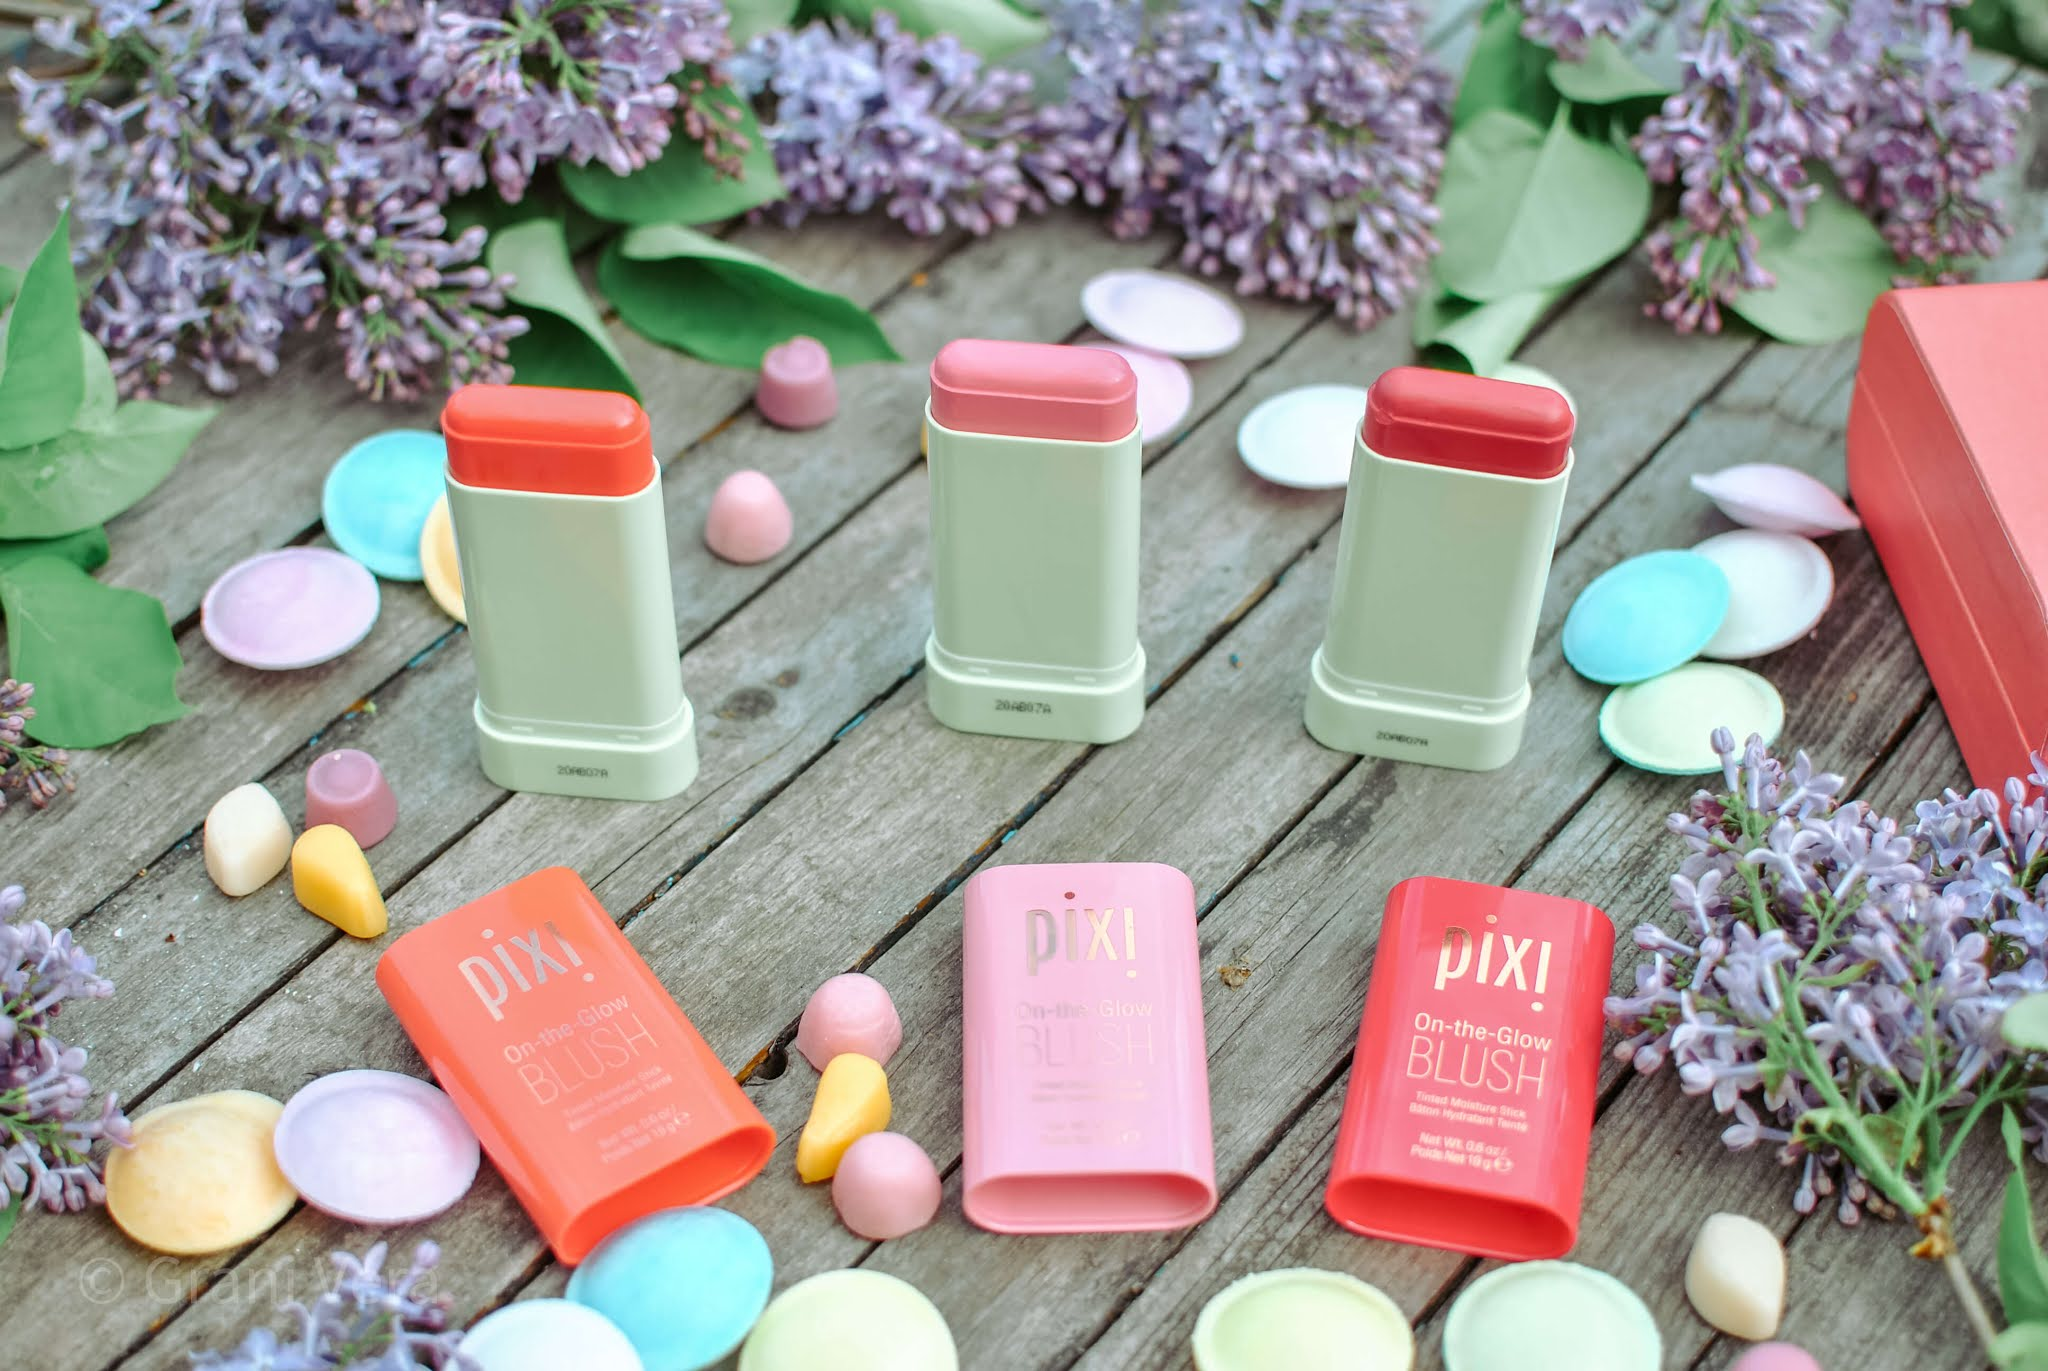 pixi-on-the-glove-blush-opinie-review